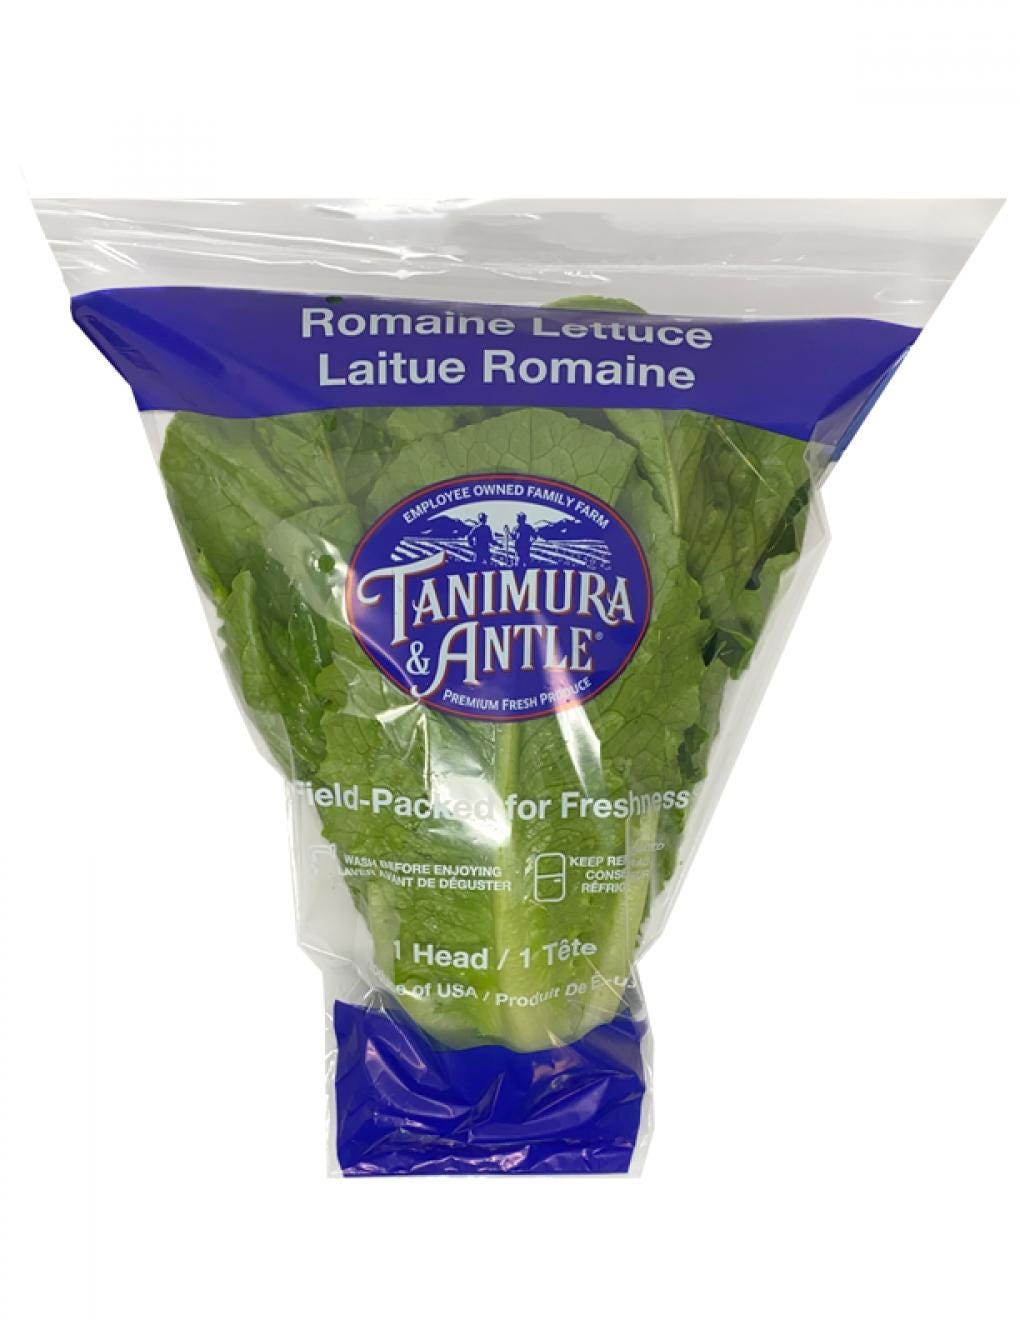 Walmart recall: Tanimura & Antle romaine lettuce recalled from more than 1,000 Walmart stores over E. coli risk